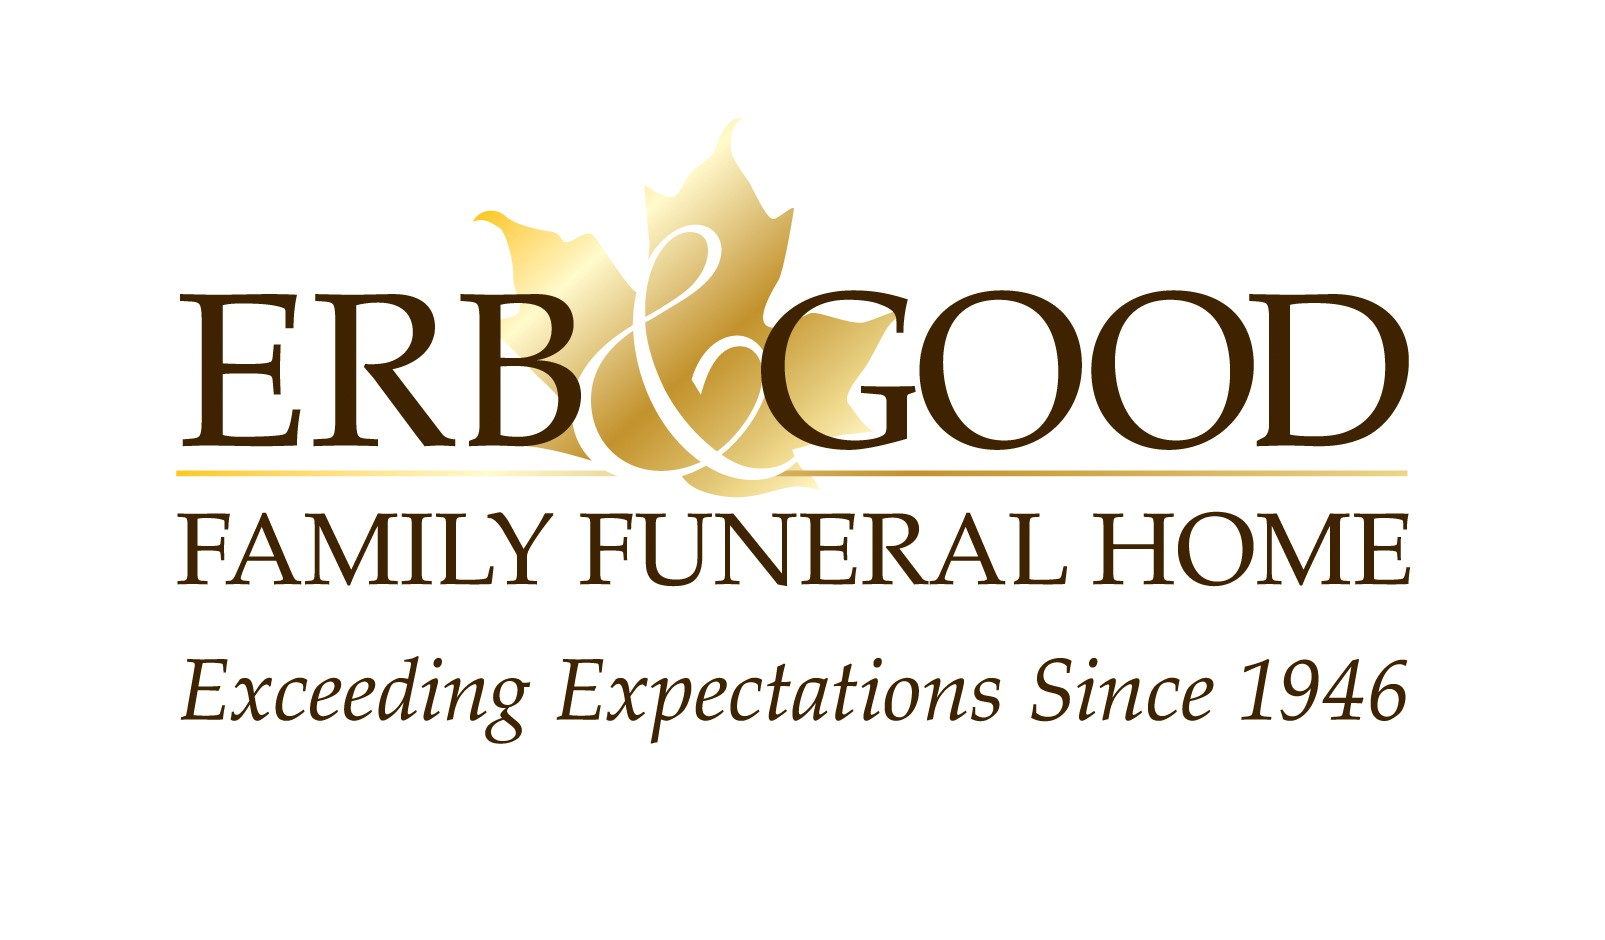 Erb and Good Family Funeral Home